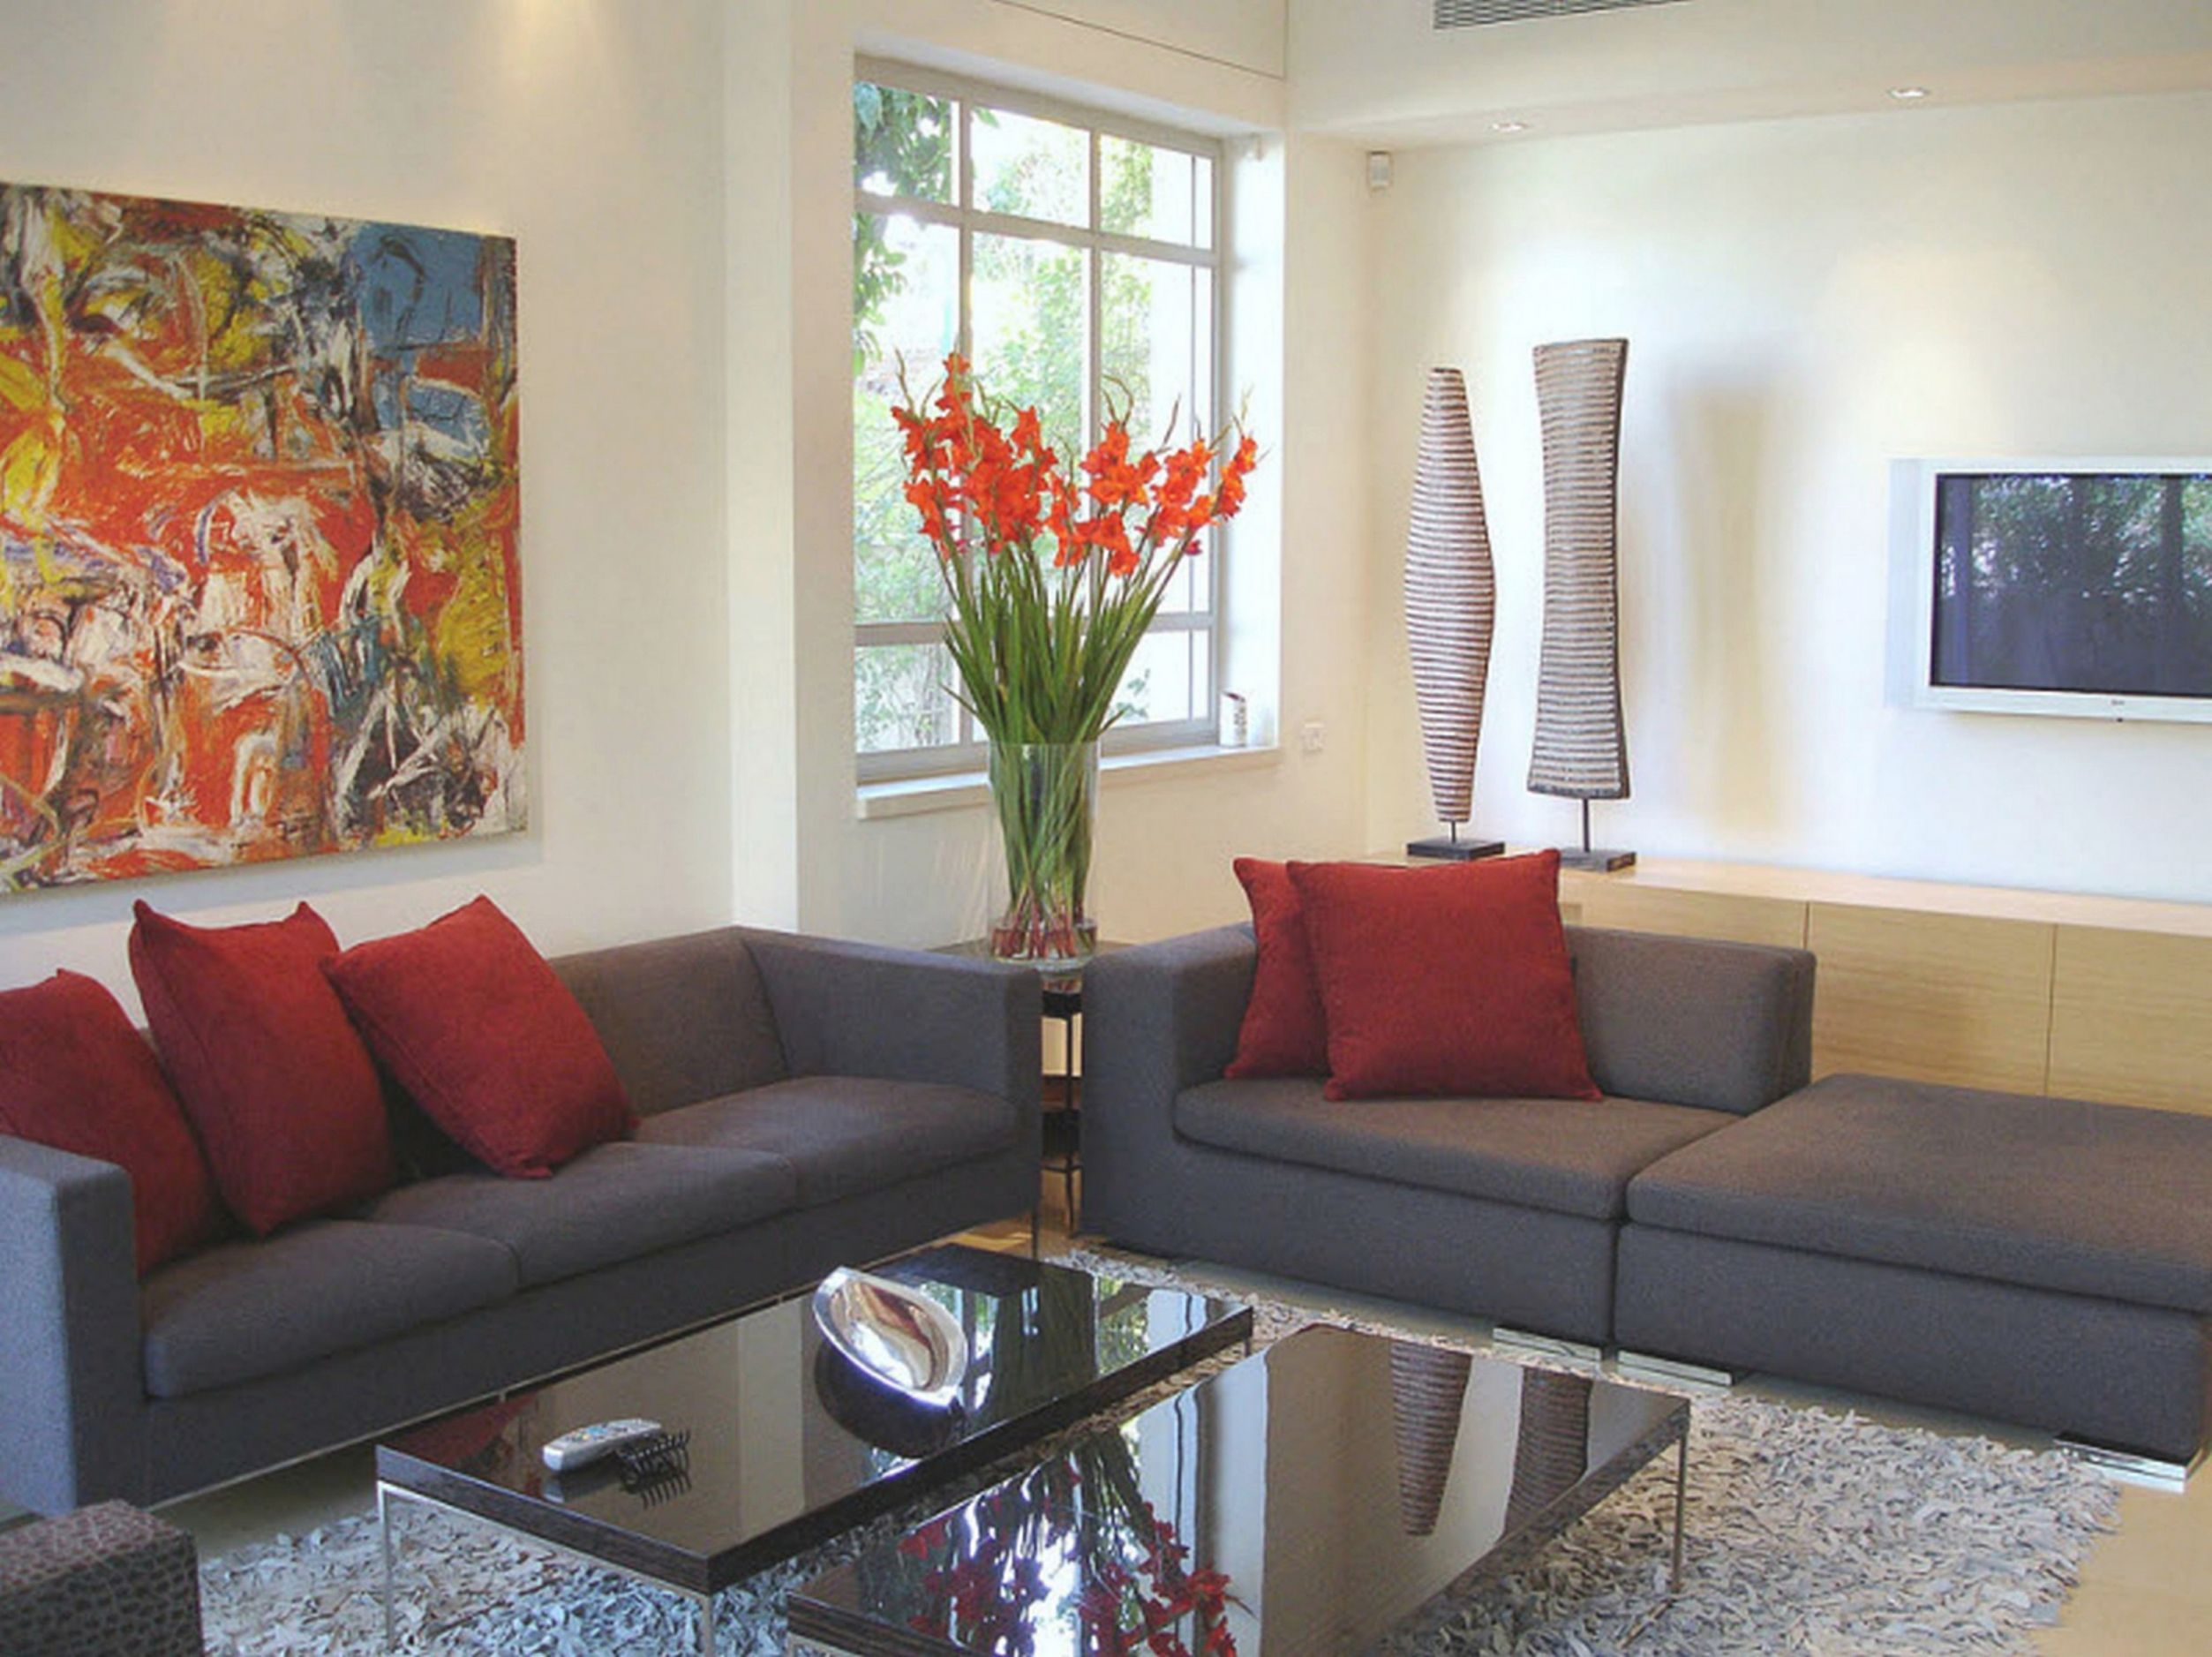 13+ The Ultimate Handbook To Small Living Room Ideas with regard to Decorating A Small Living Room On A Budget